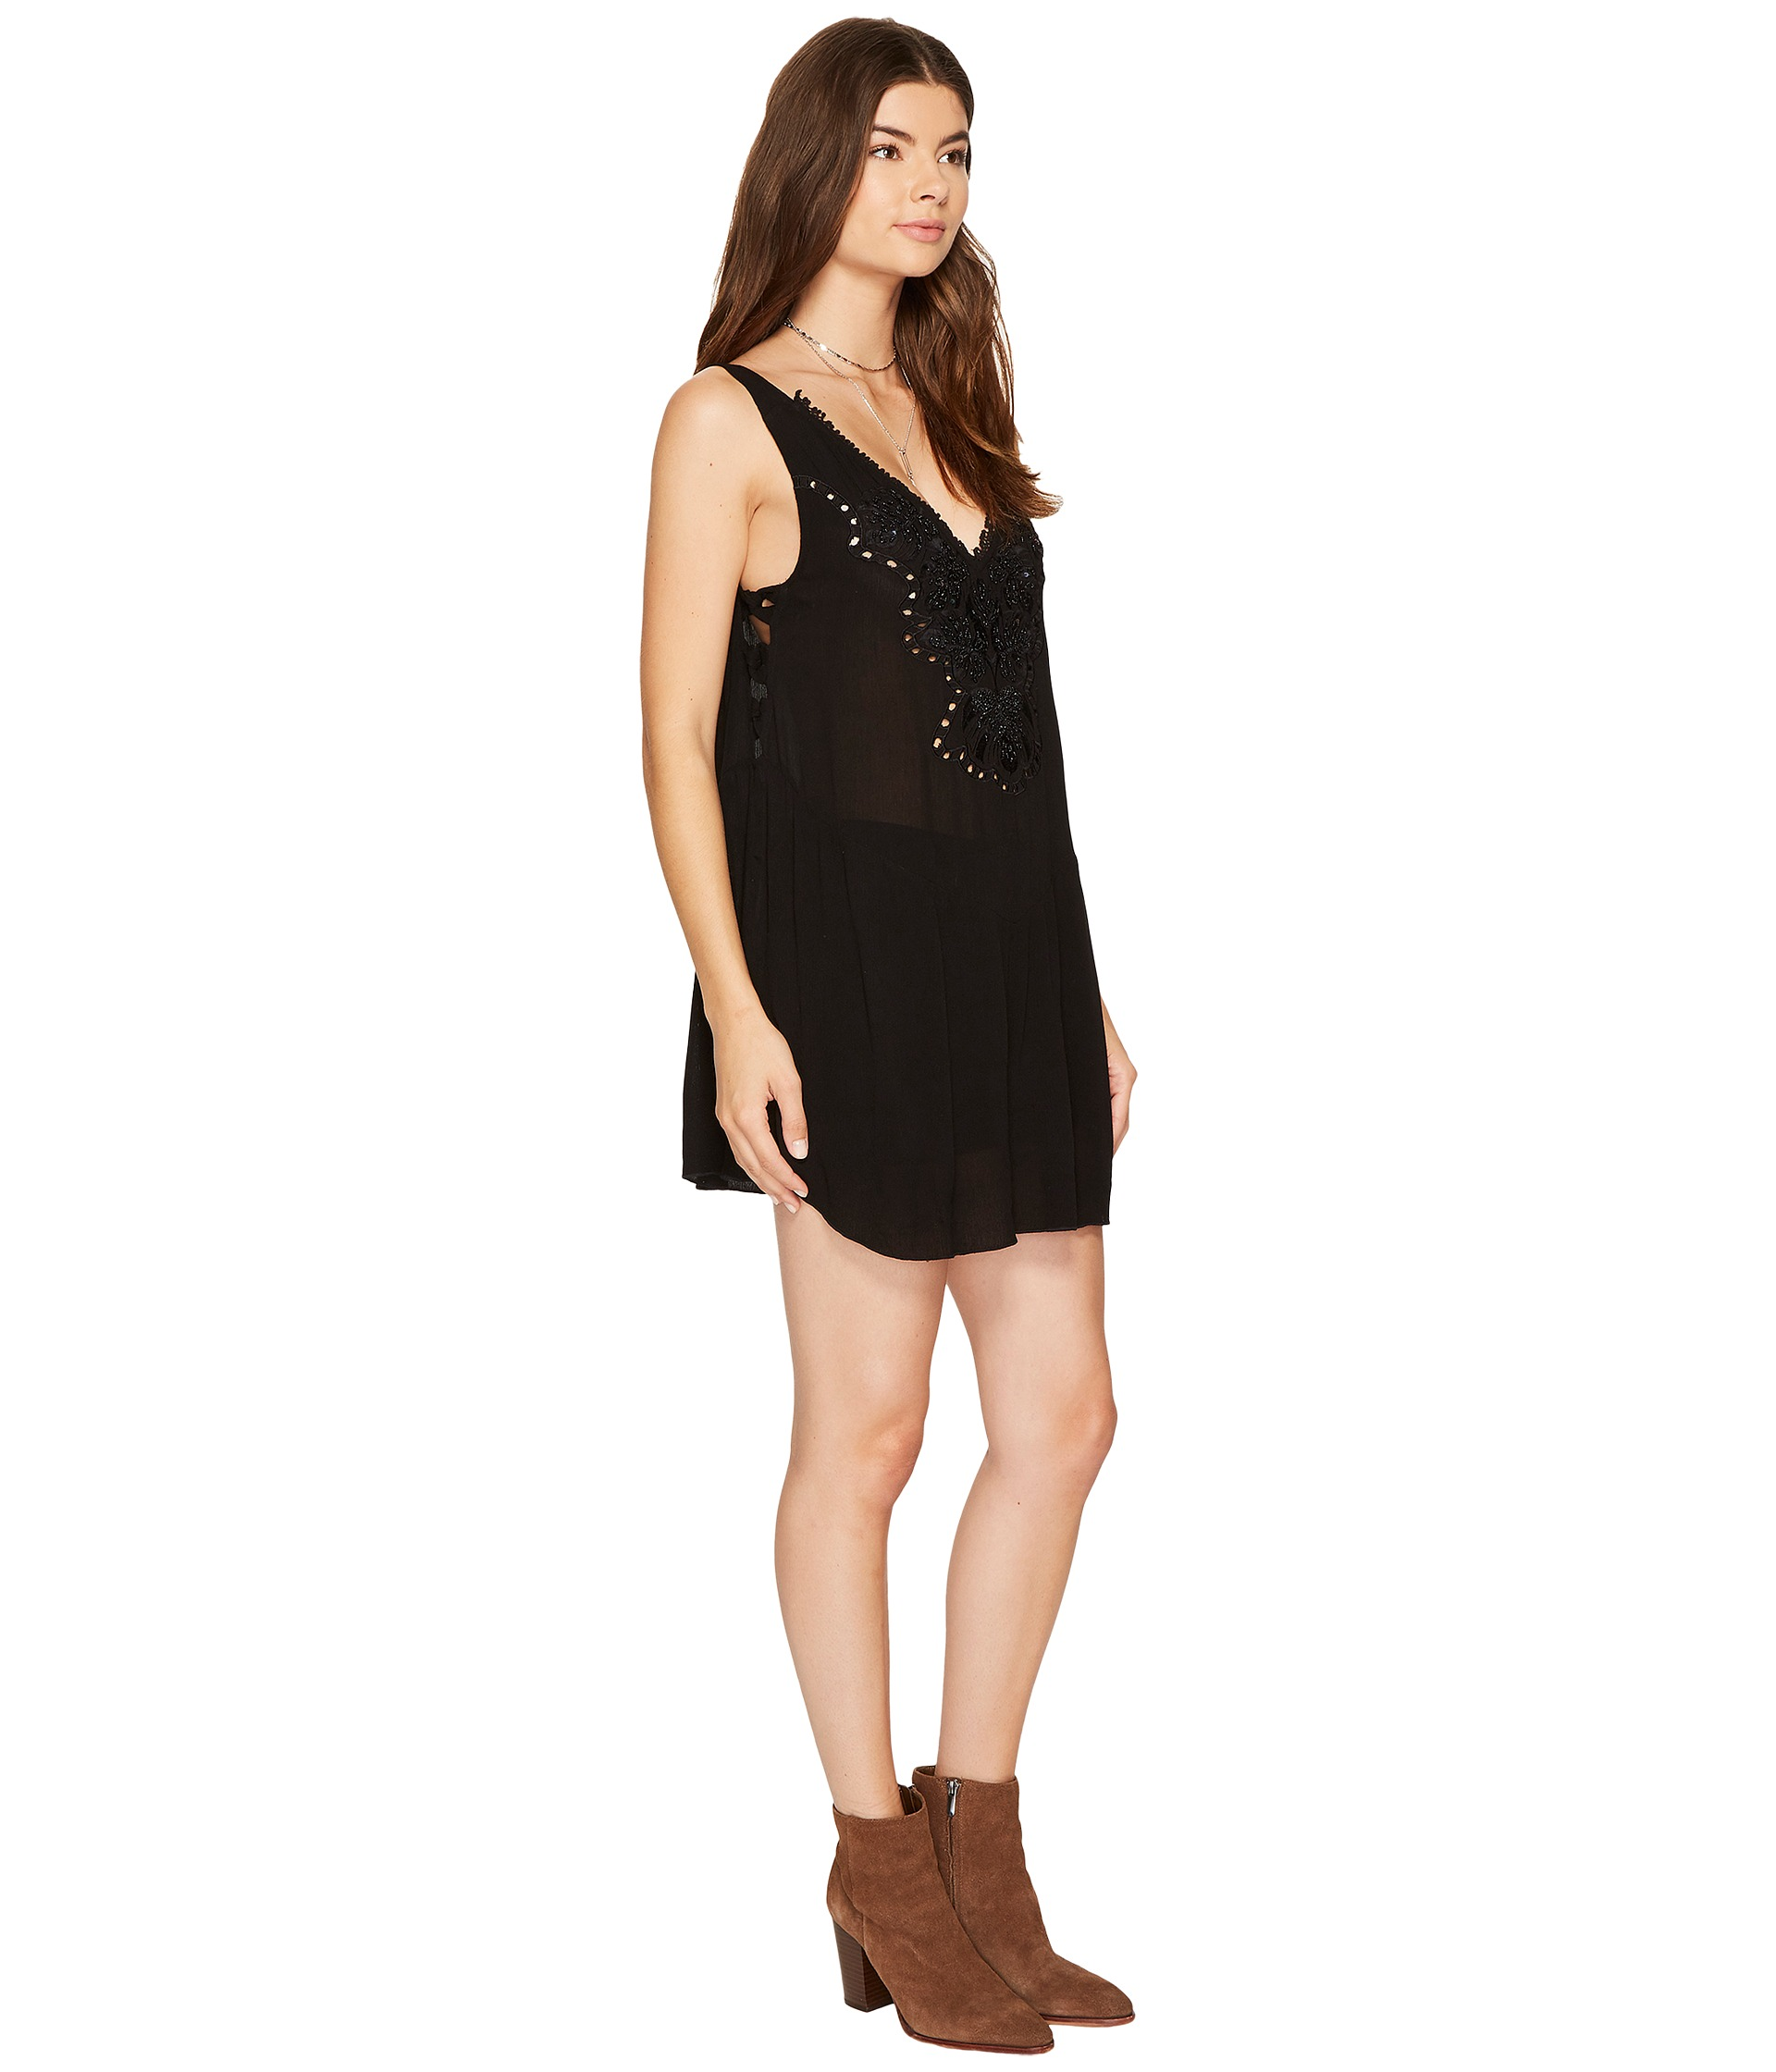 Free People Delphine Embellished Slip At Zappos.com